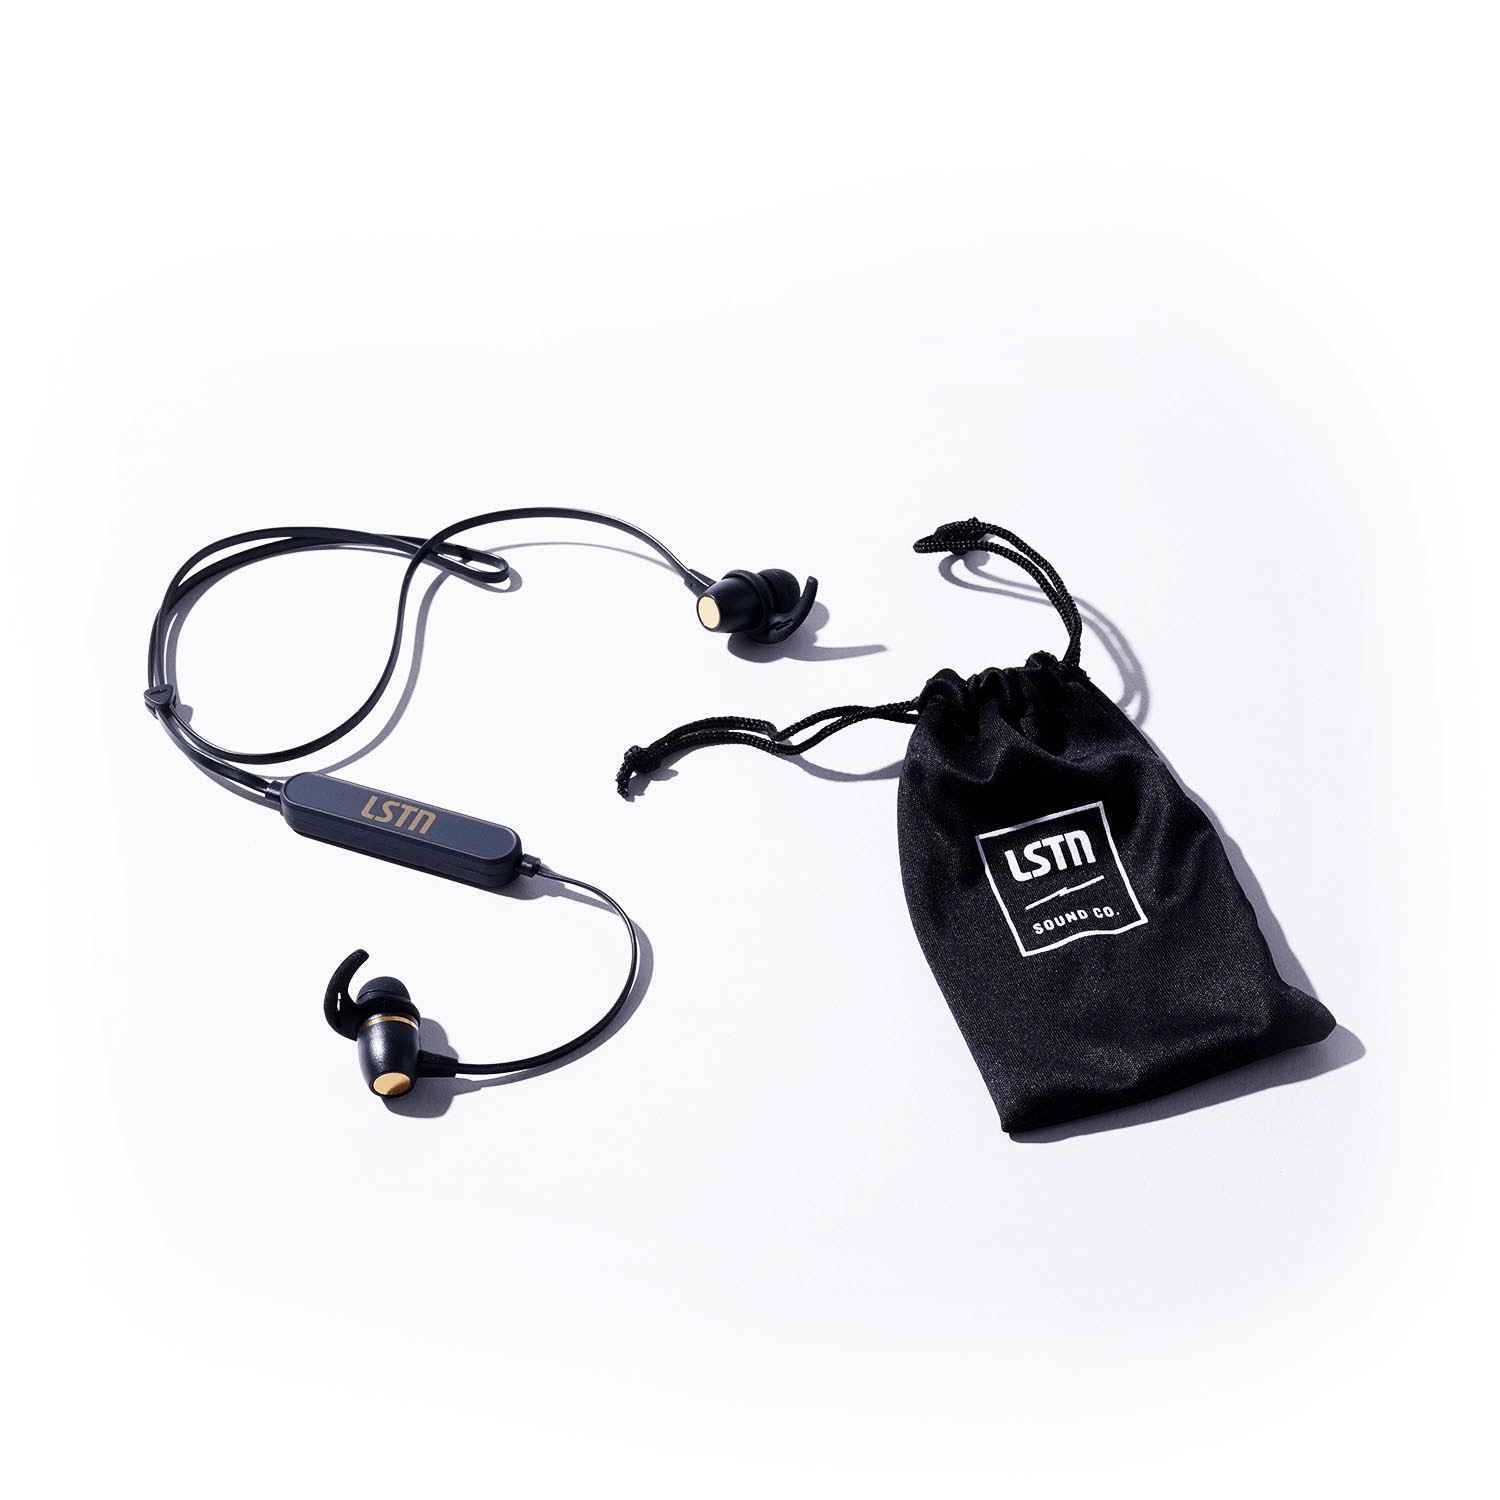 Bless Box Coupon: Get FREE LSTN Headphones!